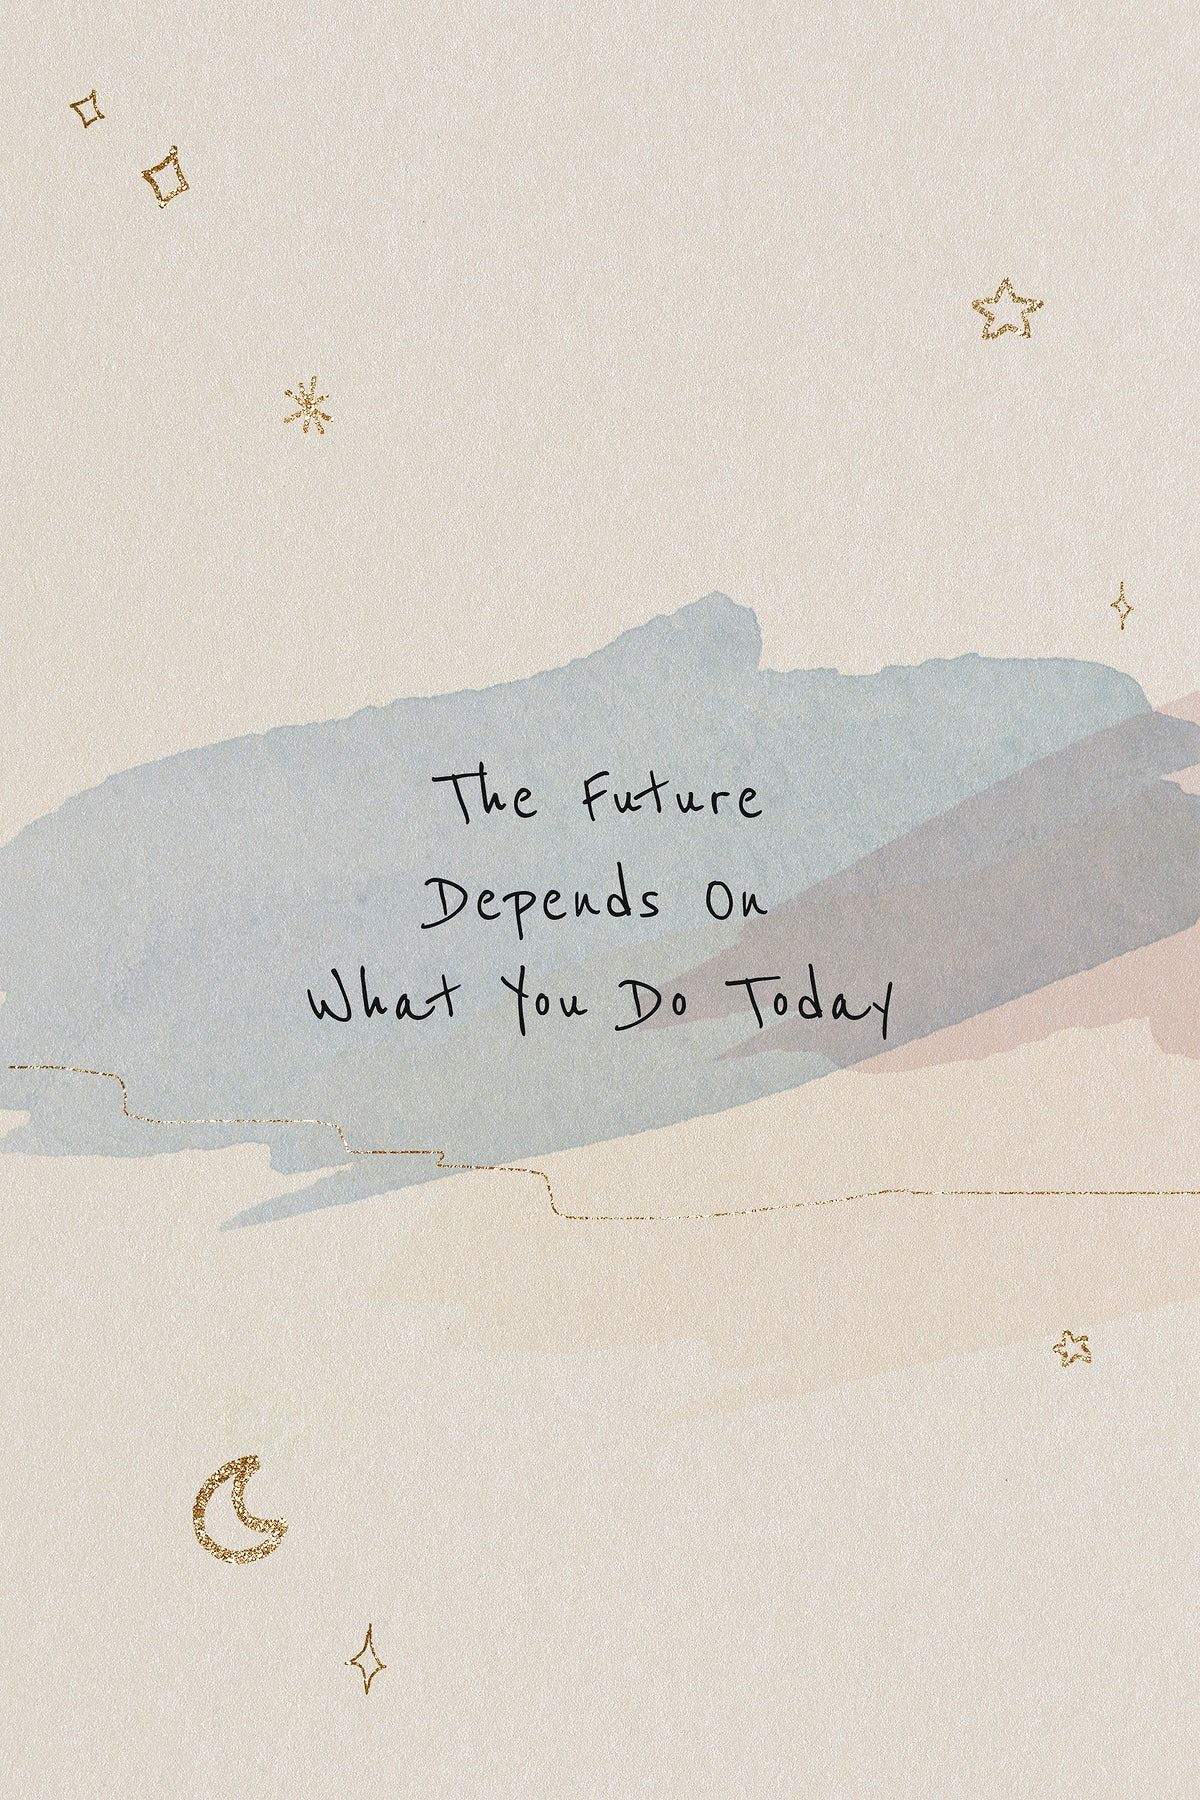 Download free image of The future depends on what you do today inspirational career quote by Ning about quote, mindfulness, moon, watercolour background, and earth tone 2520868